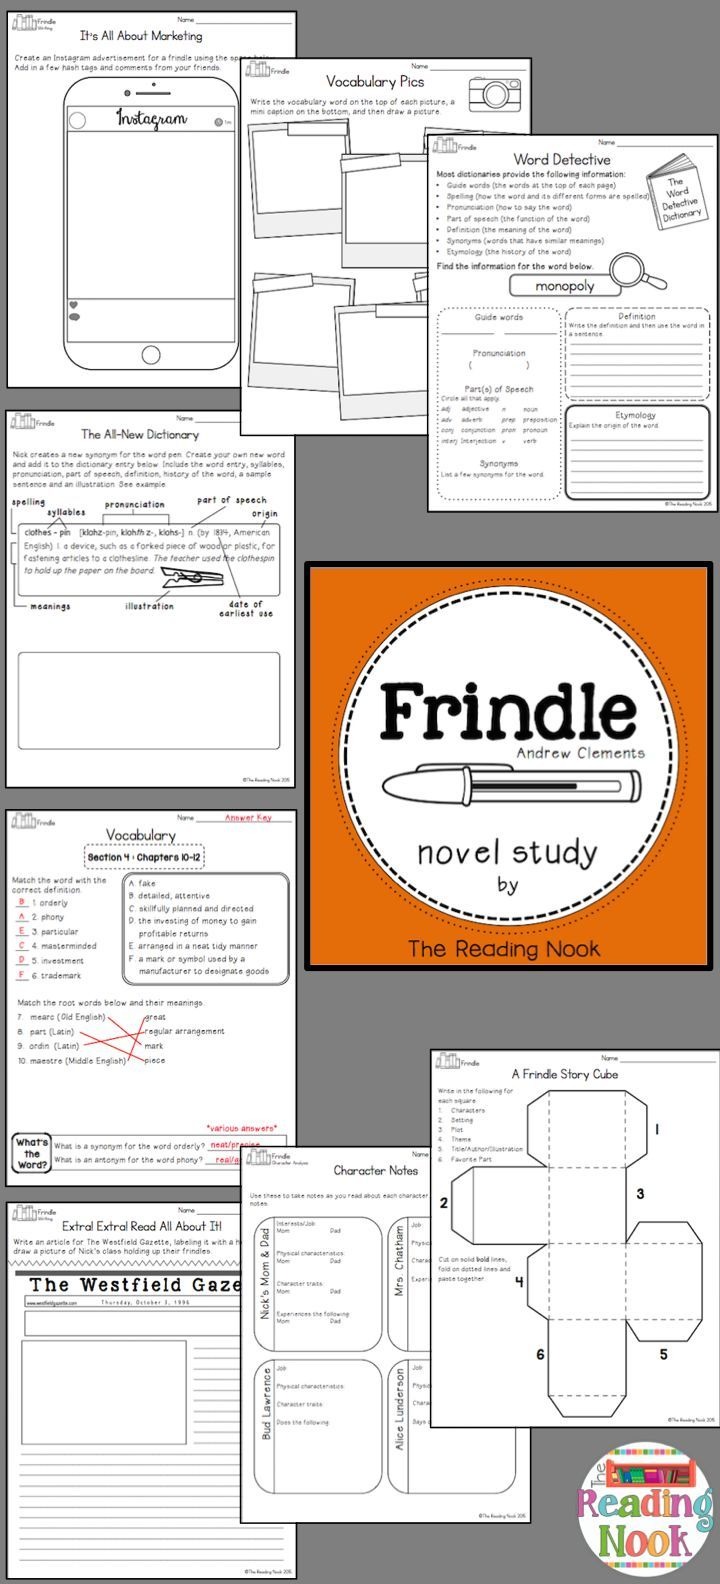 Worksheets Frindle Worksheets best 25 frindle ideas on pinterest andrew clements new novel study